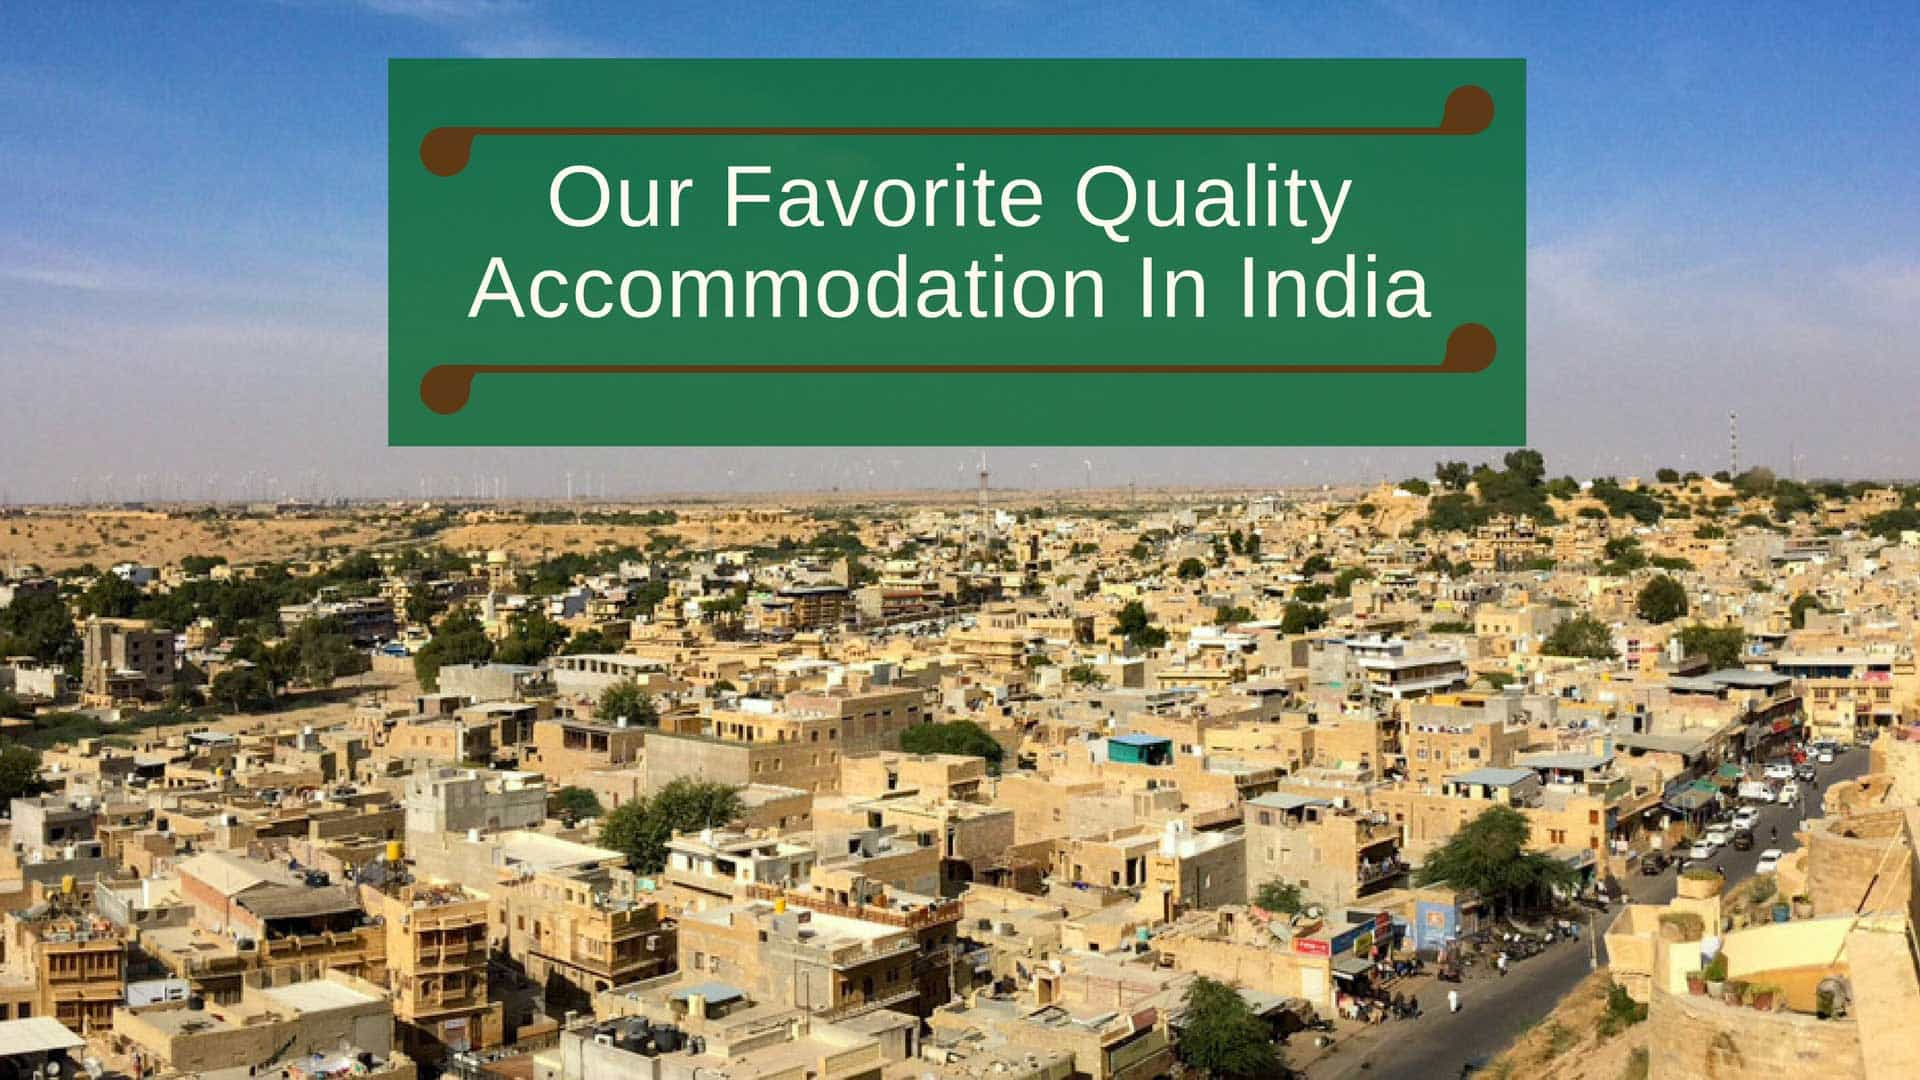 Our Favorite Quality Accommodation In India